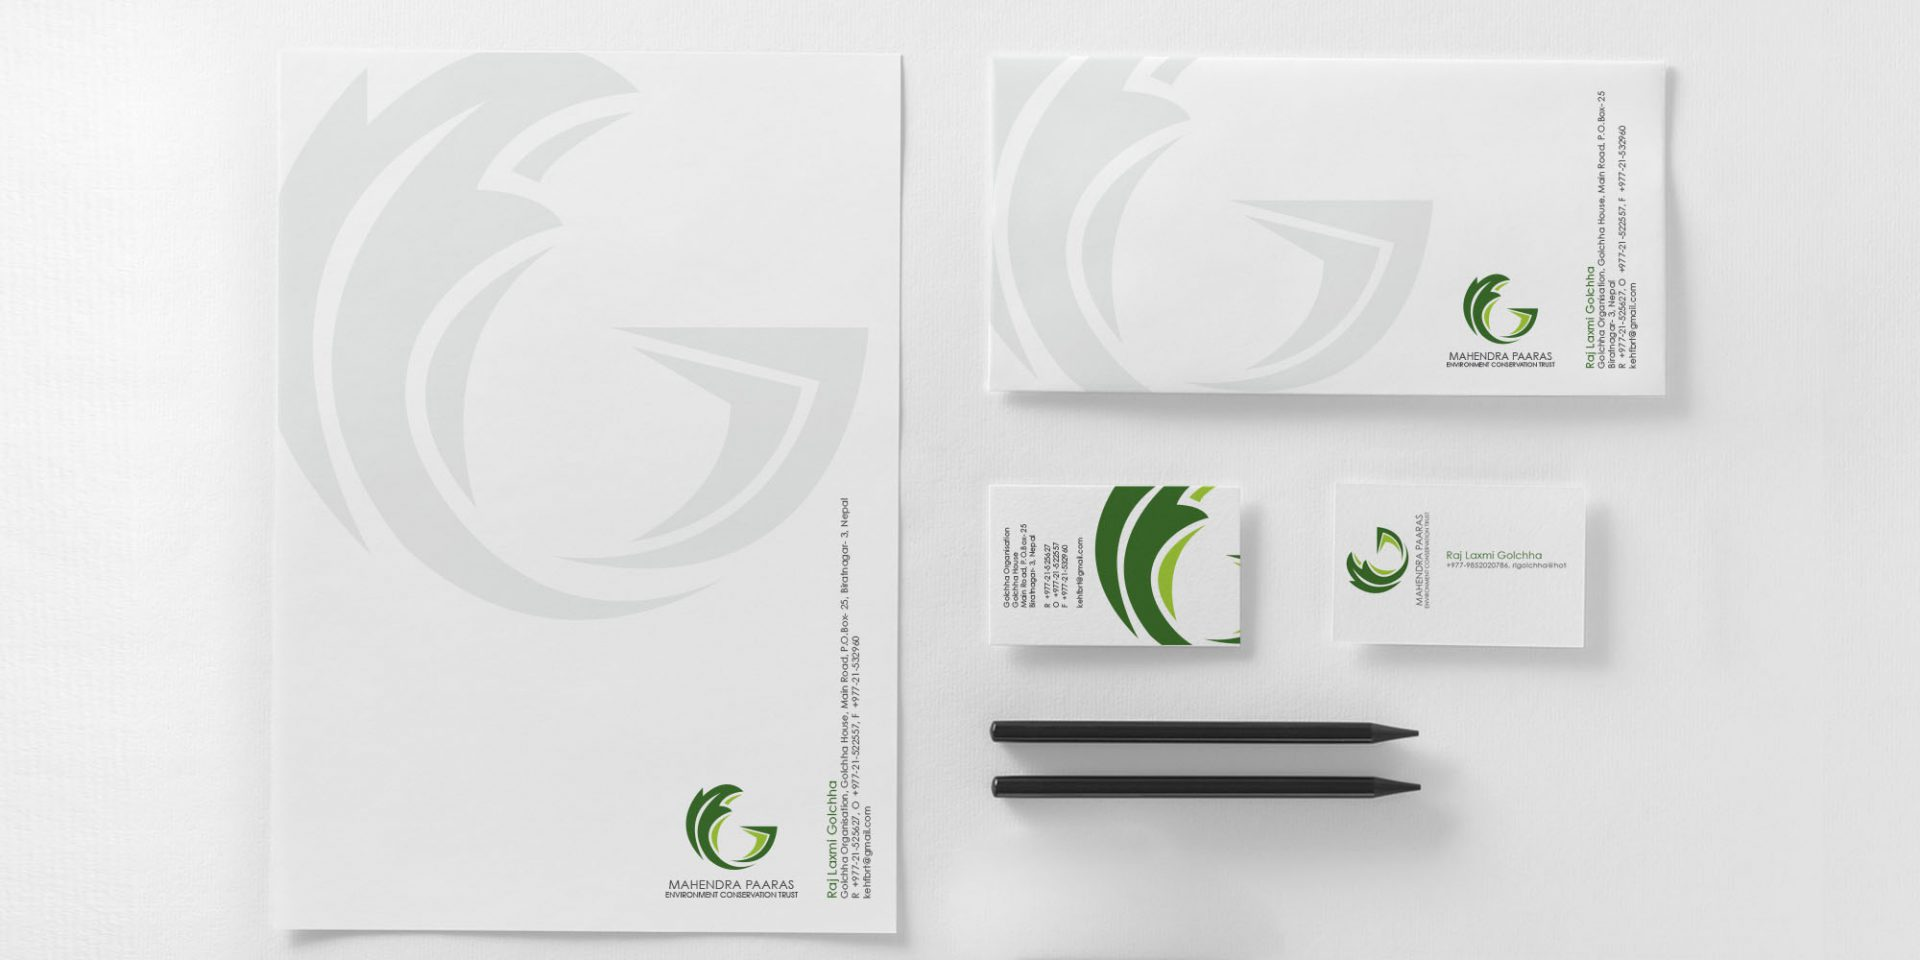 Environment Protection Branding